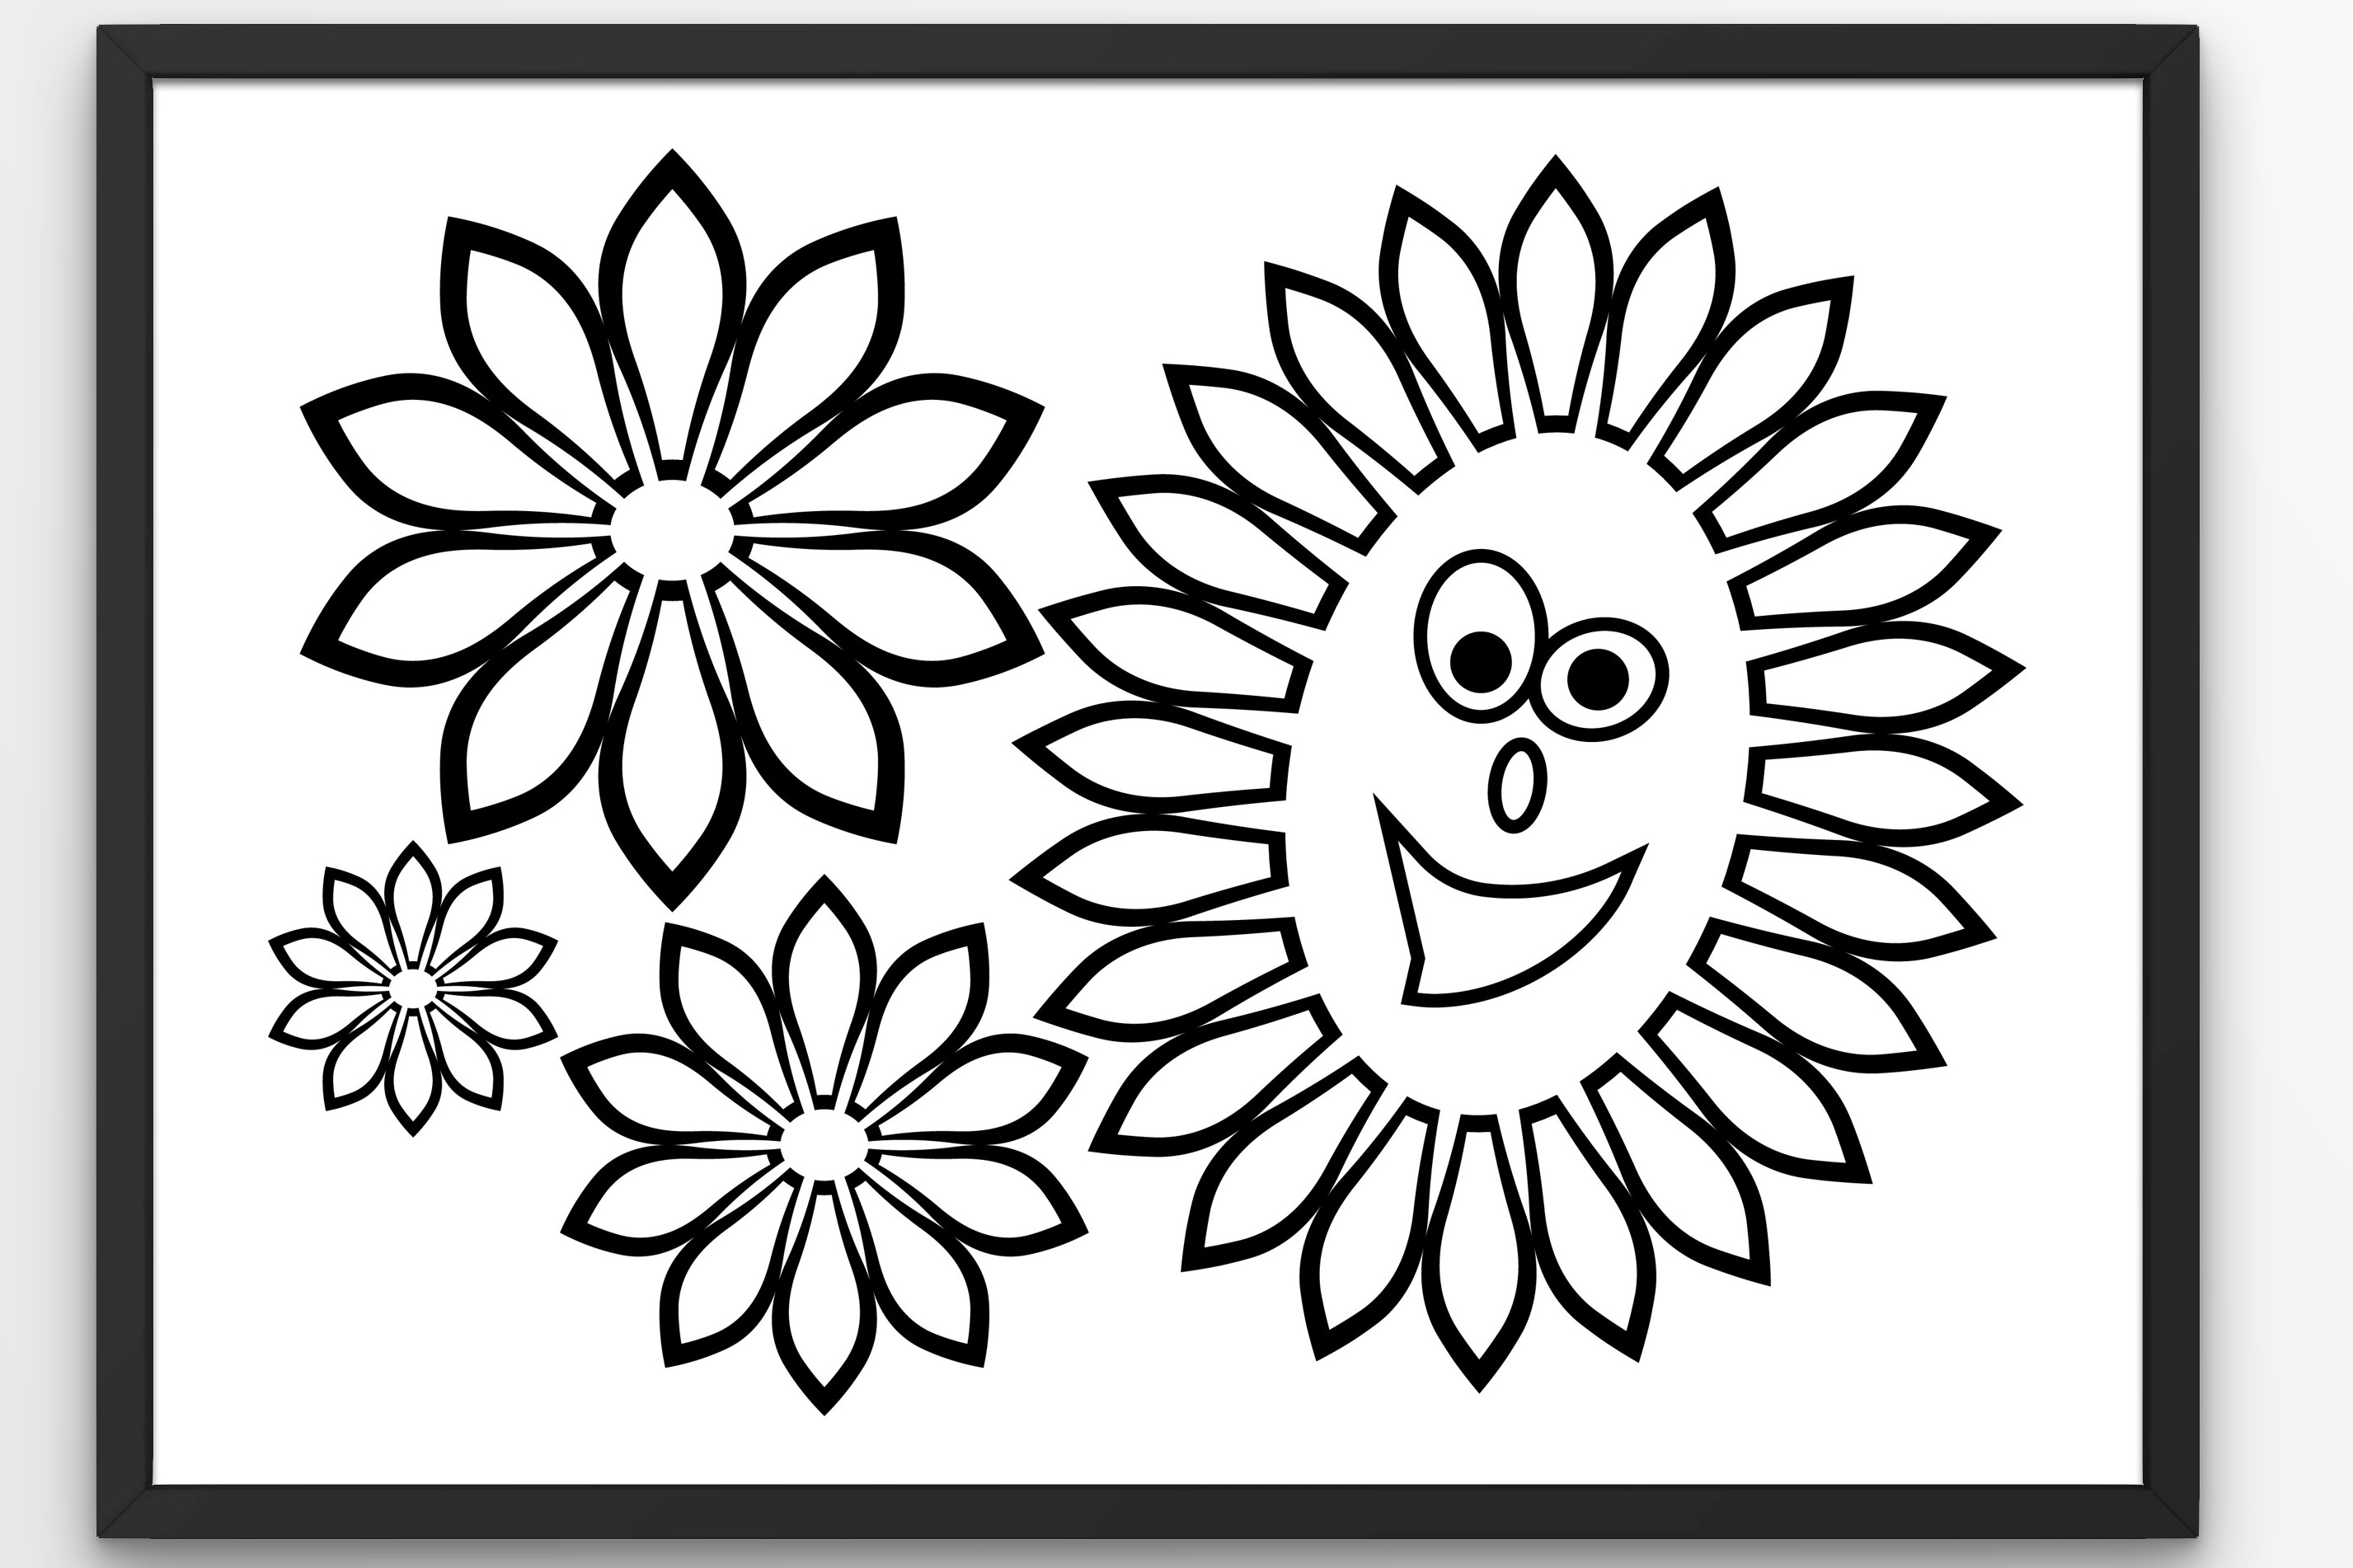 Download Free Flowers Funny Sunflower Graphic By Tanja Dianova Creative Fabrica for Cricut Explore, Silhouette and other cutting machines.